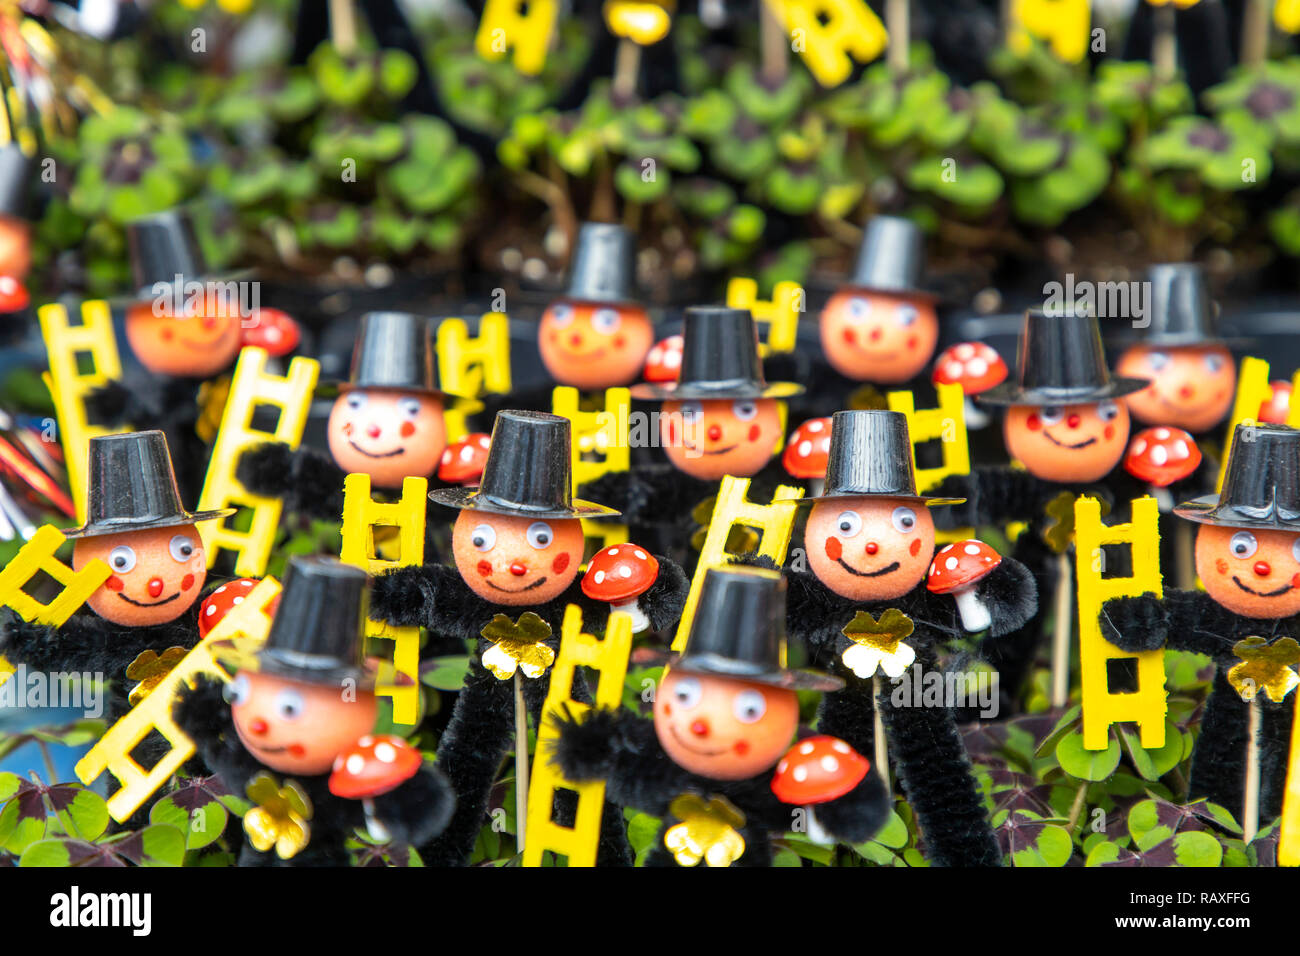 Neujahrchen, good luck charm at the beginning of the year, chimney sweep figures with lucky clover plant, Stock Photo